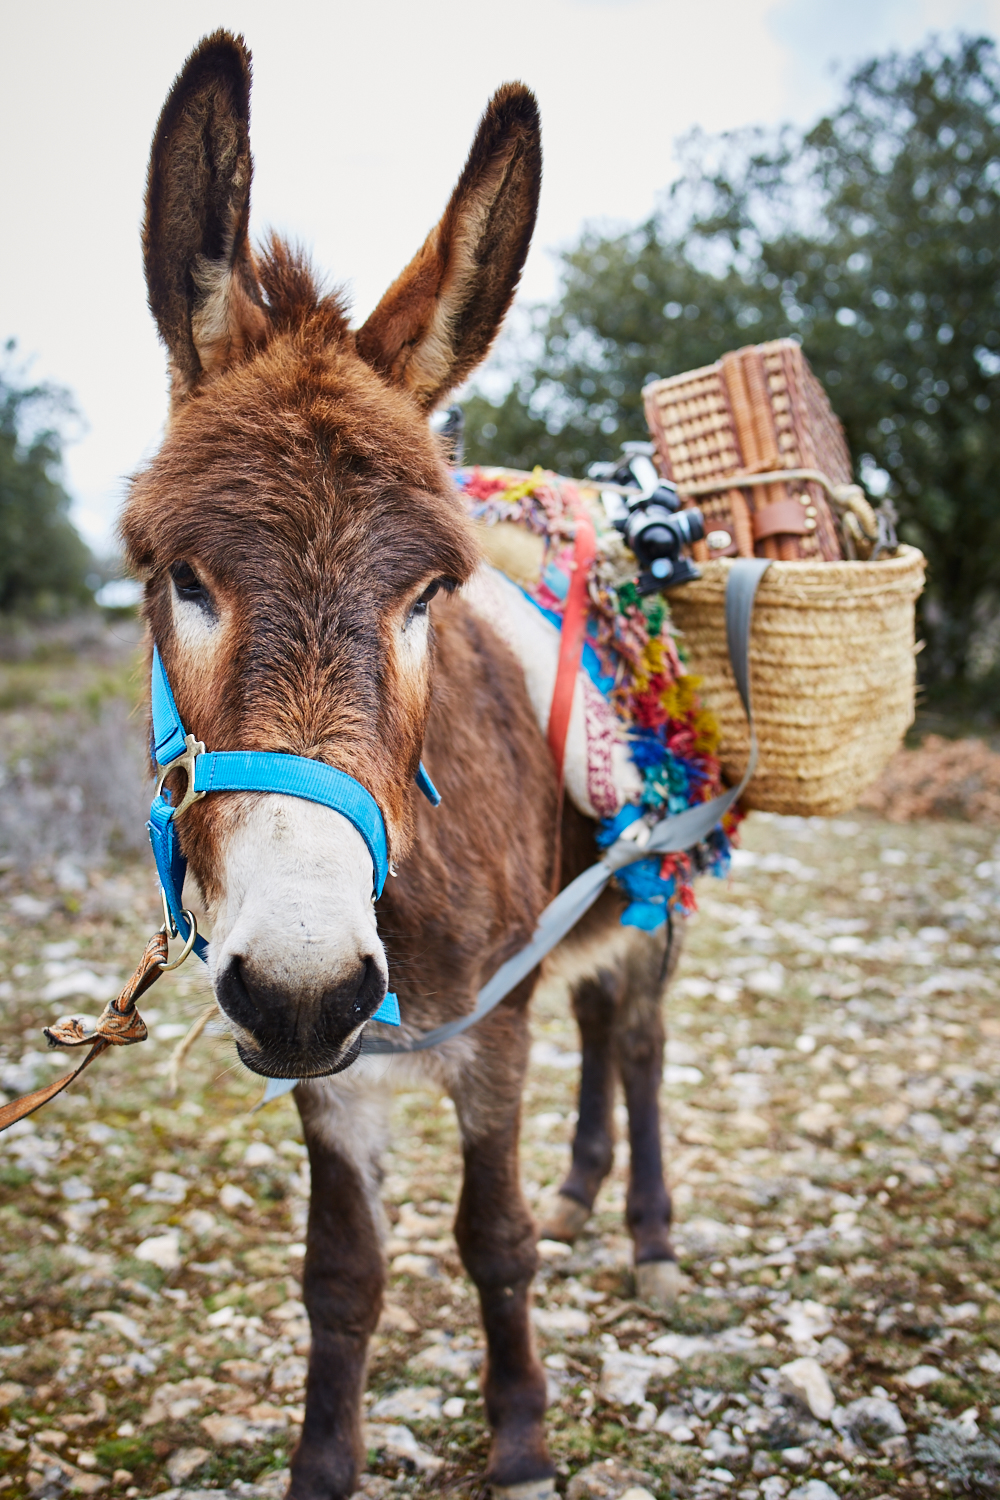 Spanish Burro named Momo